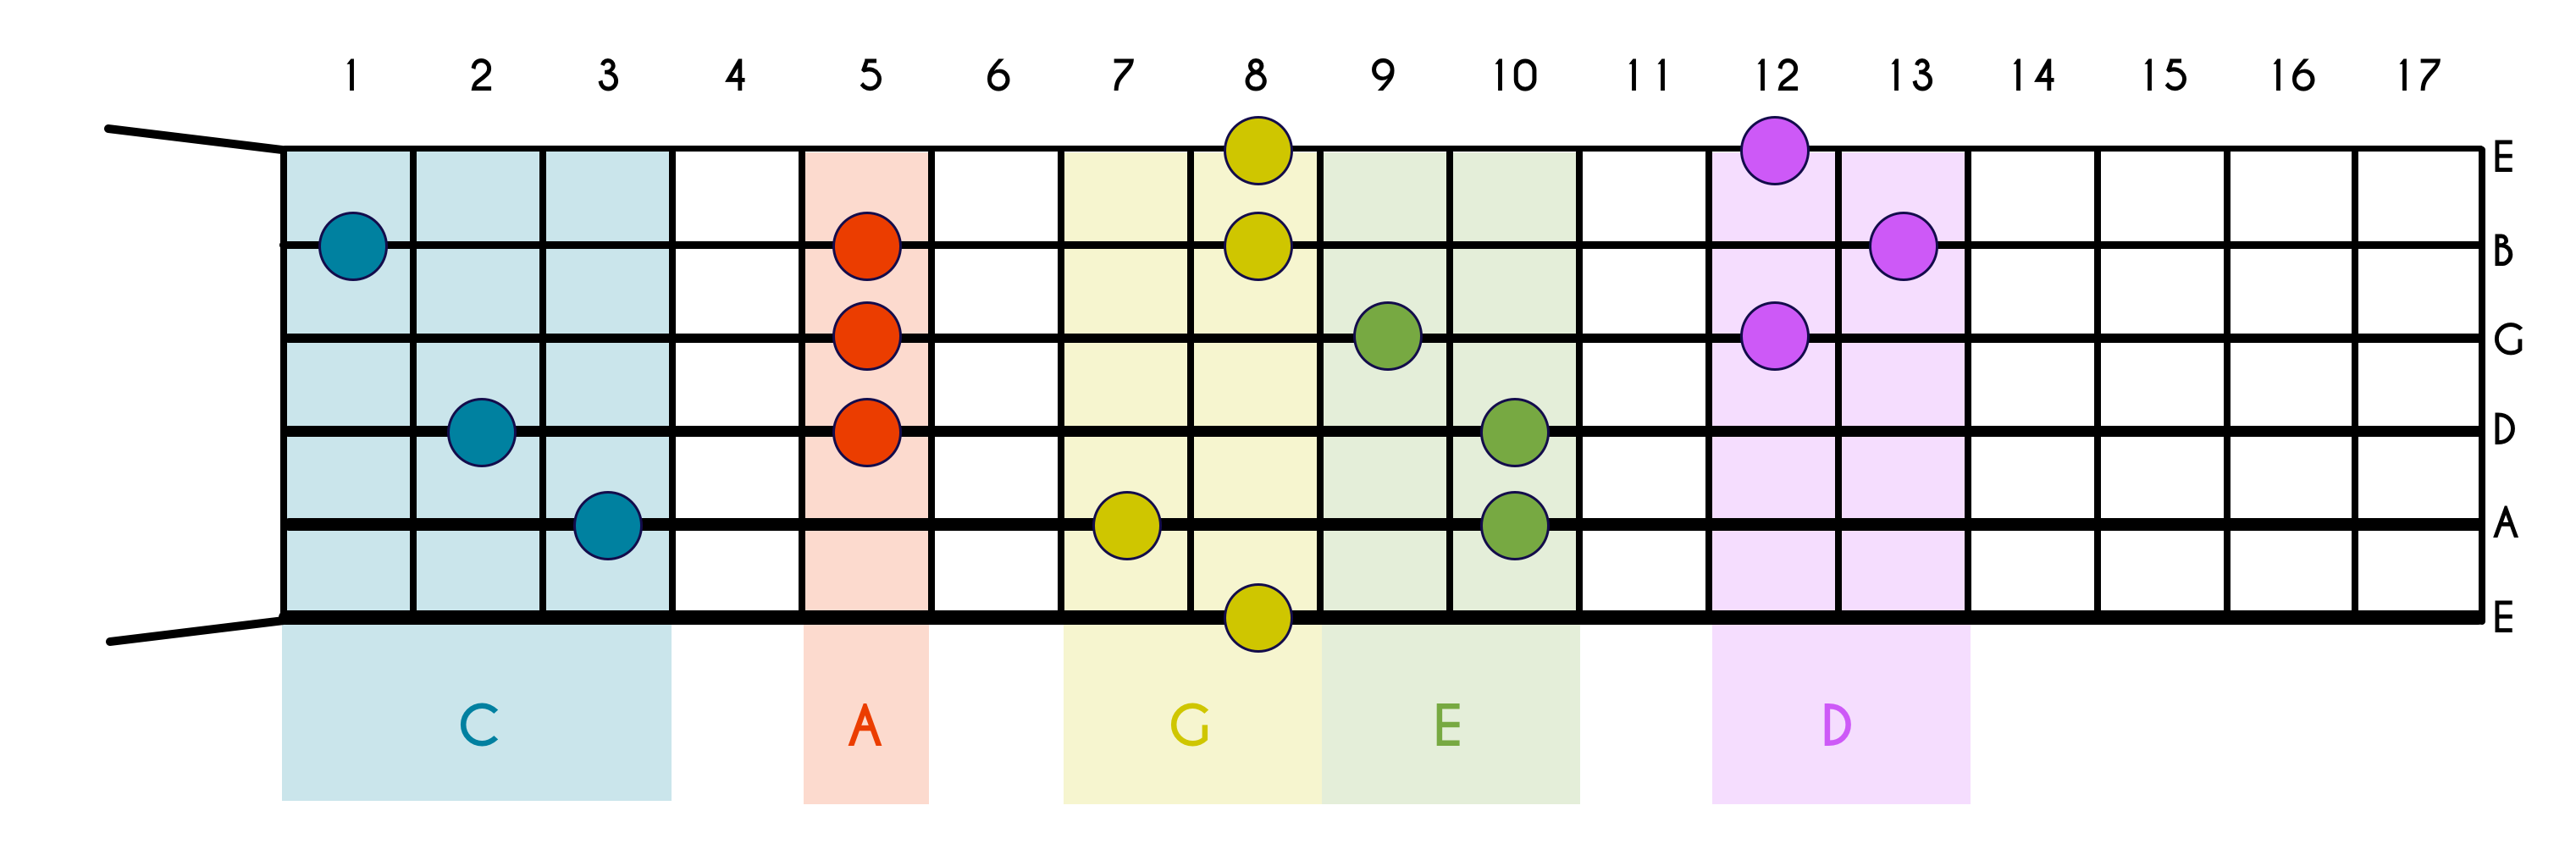 Guitar Scales Explained – Theory, Diagrams and Everything You Need to Know